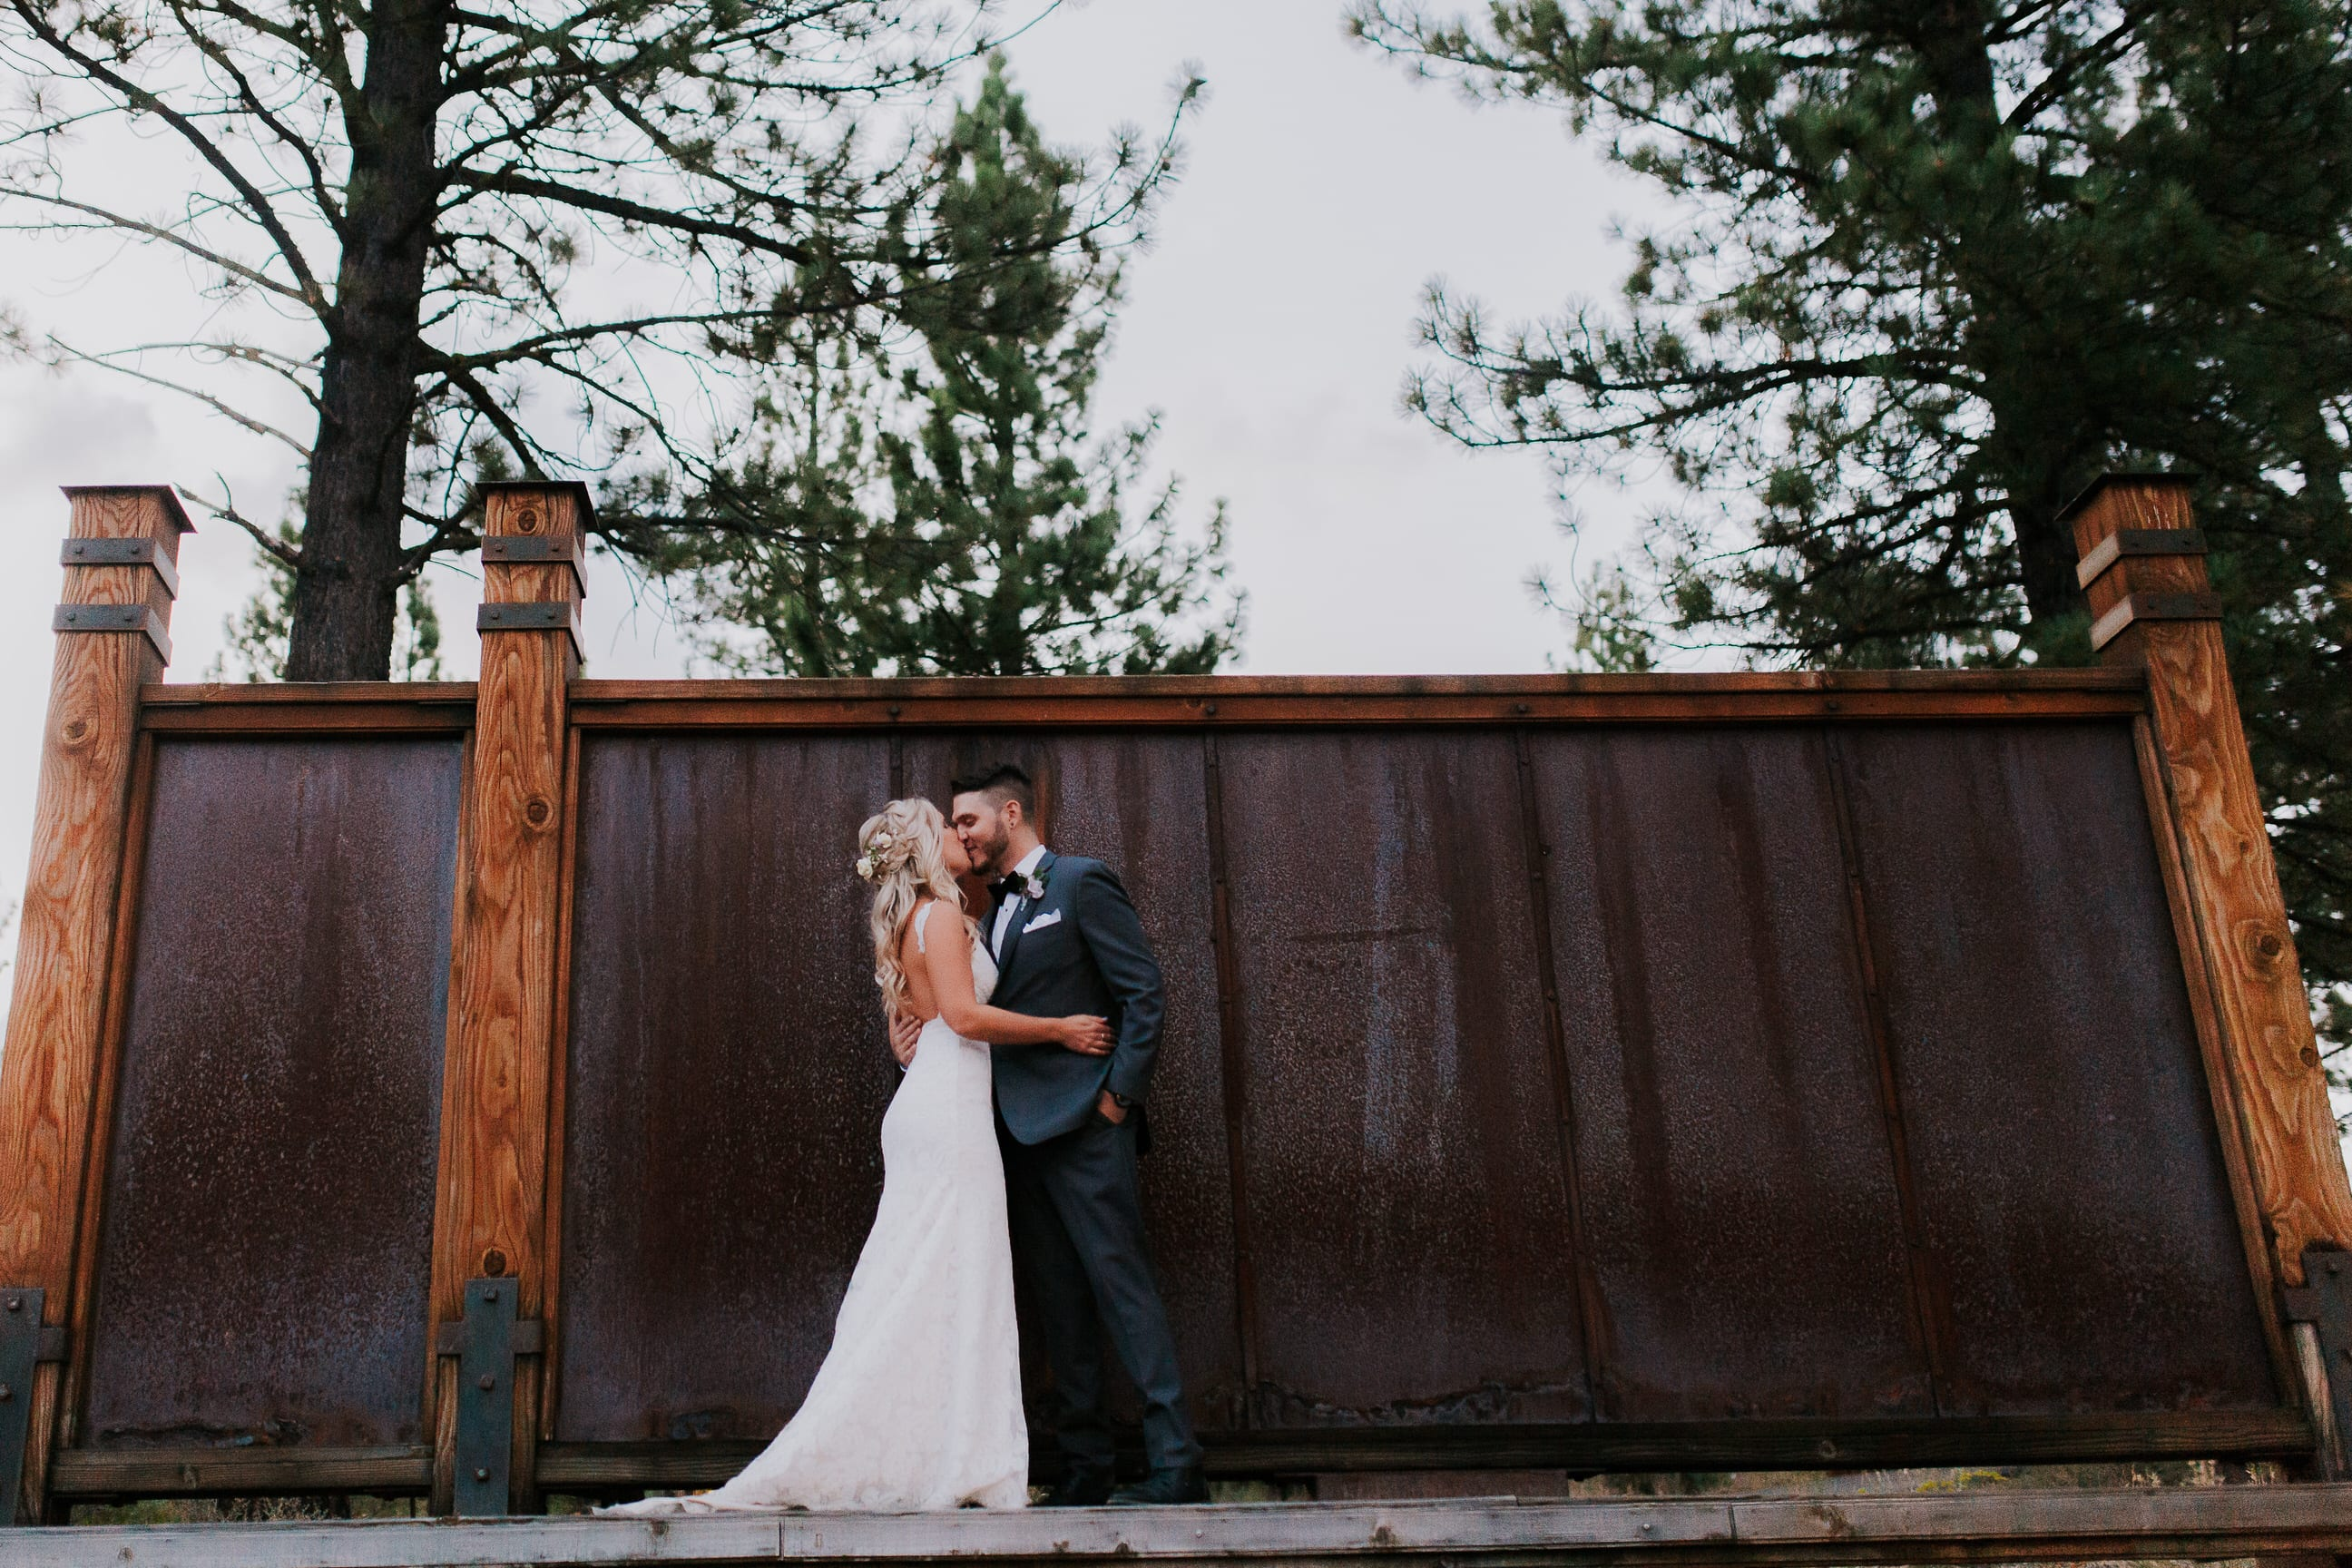 Bride and groom portraits, summer wedding Gray's Crossing Lake Tahoe California wedding venue